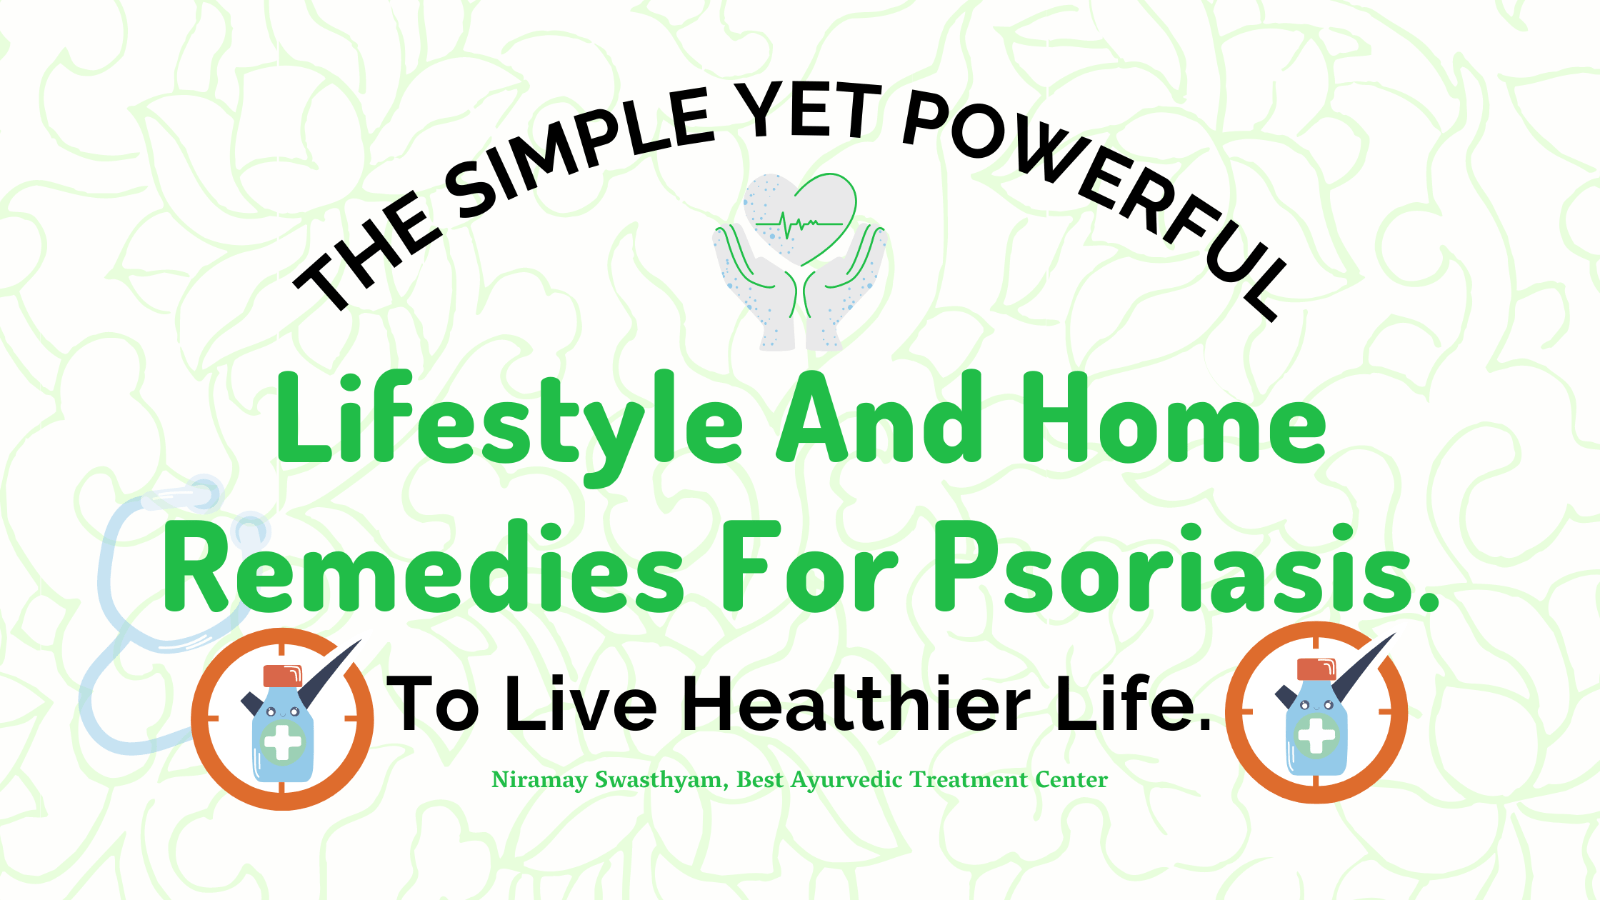 13 The Simple Yet Powerful Lifestyle And Home Remedies For Psoriasis.